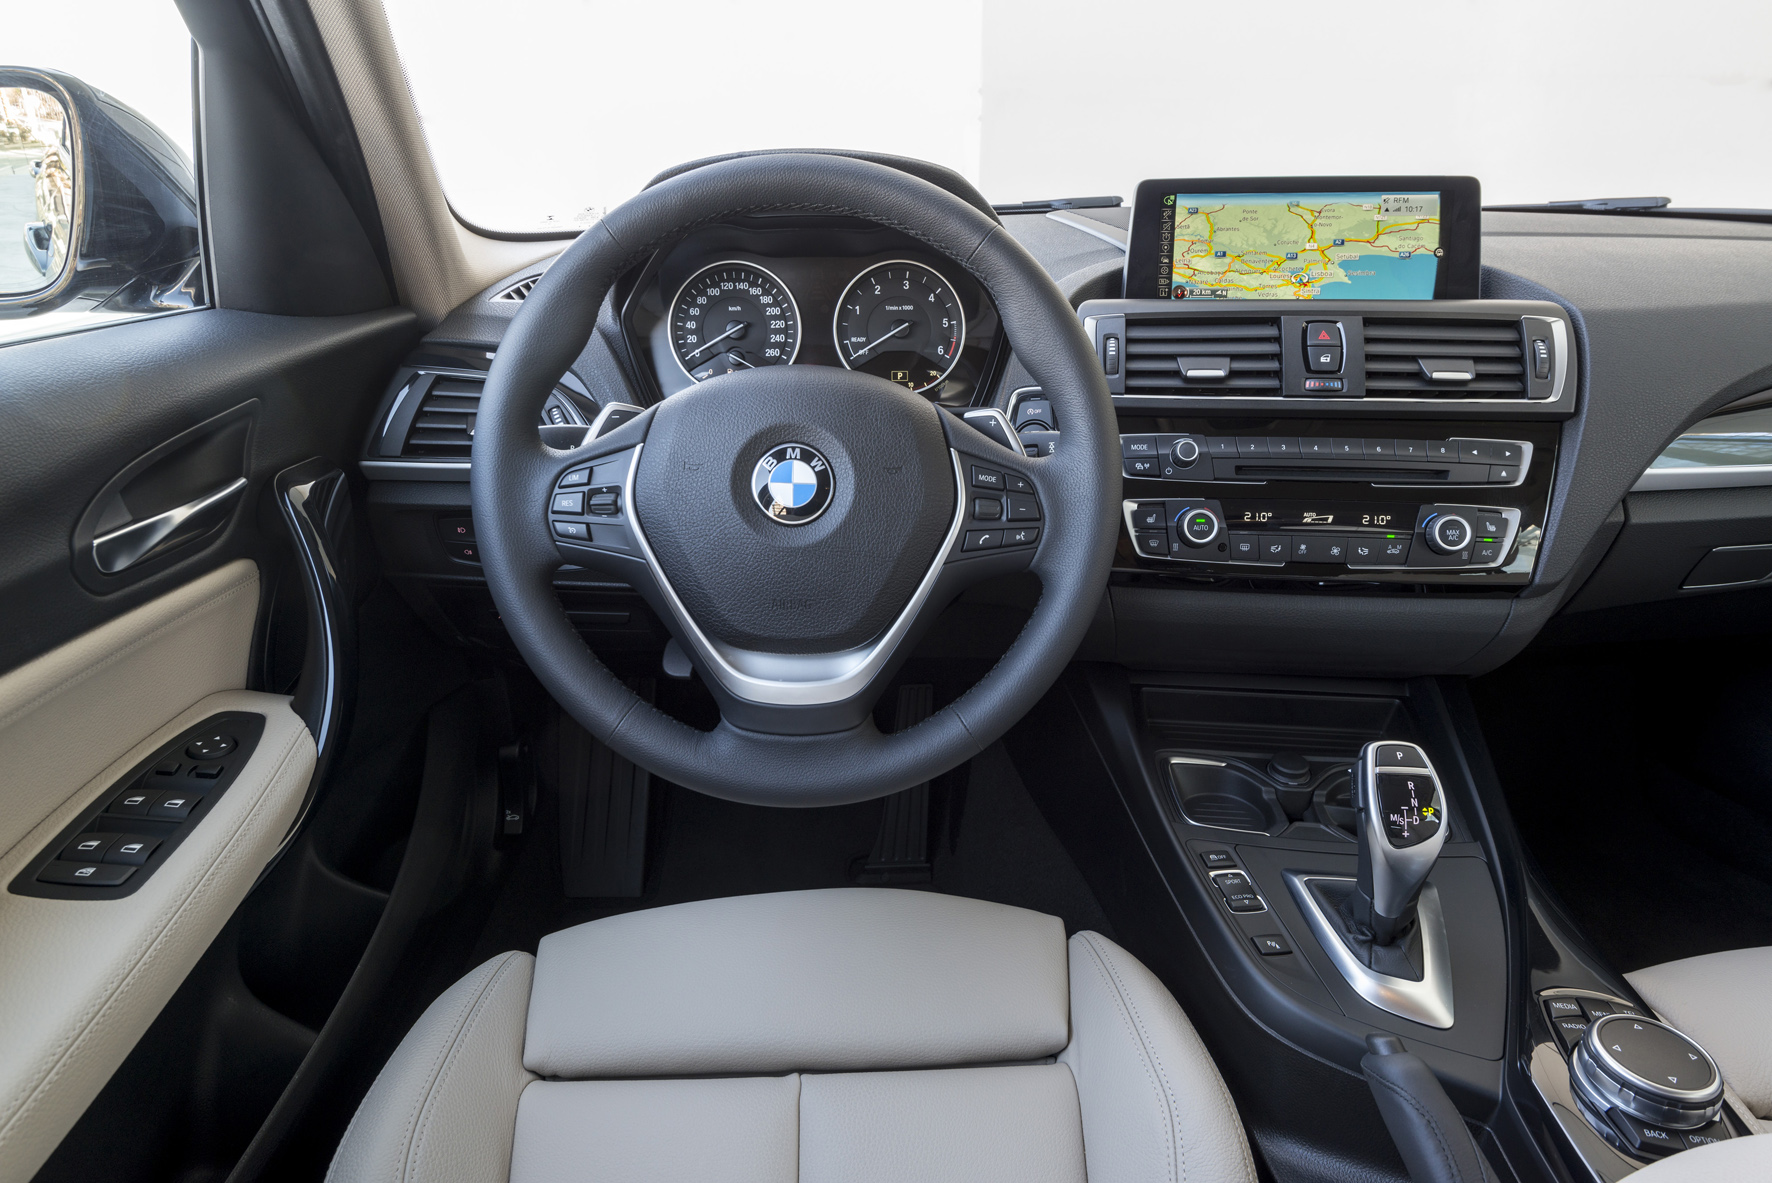 The drivers seat view in a BMW 1 Series